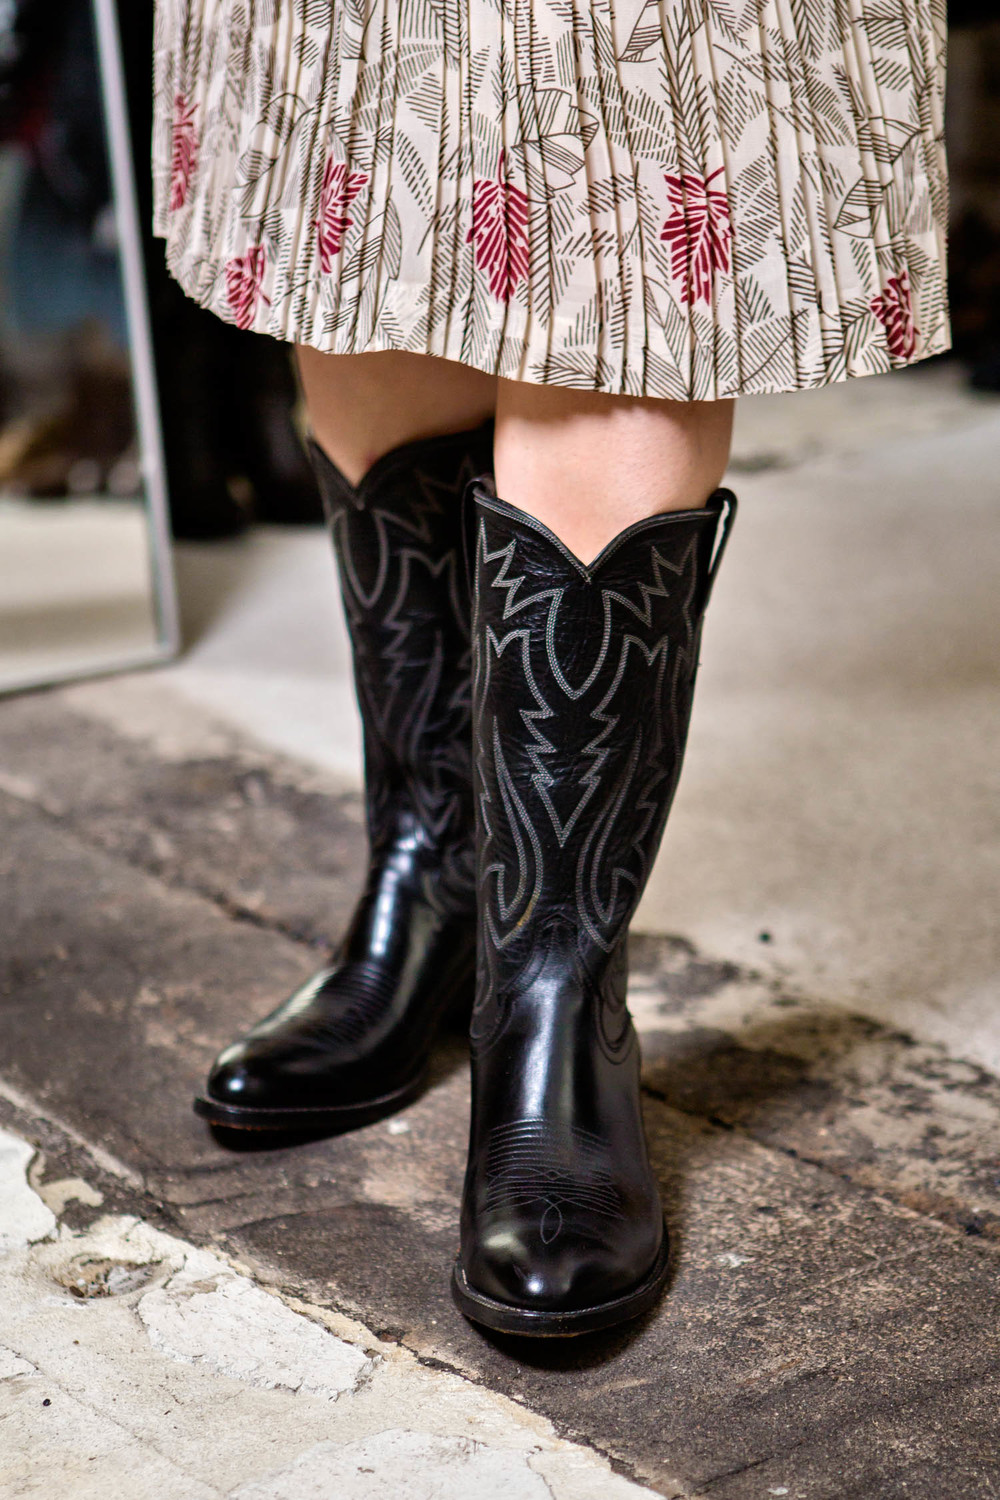 Carolina's way of styling is bold. I would never have had the courage to choose these boots to match with this dress.